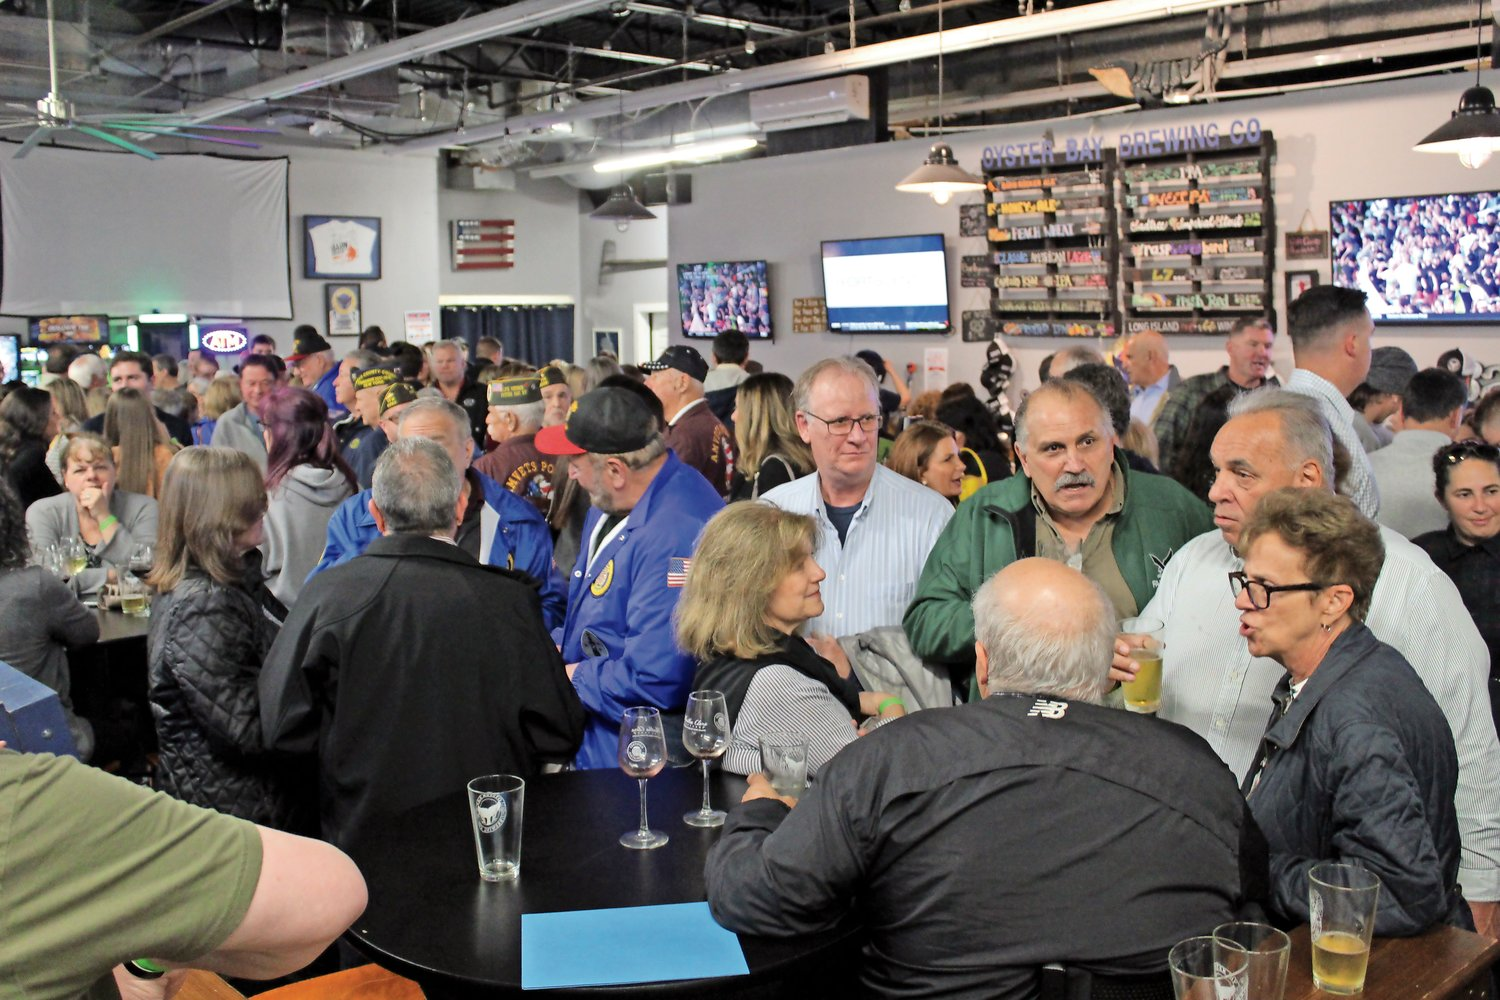 The Oyster Bay Brewing Company was packed to capacity with residents from every sect of community life.